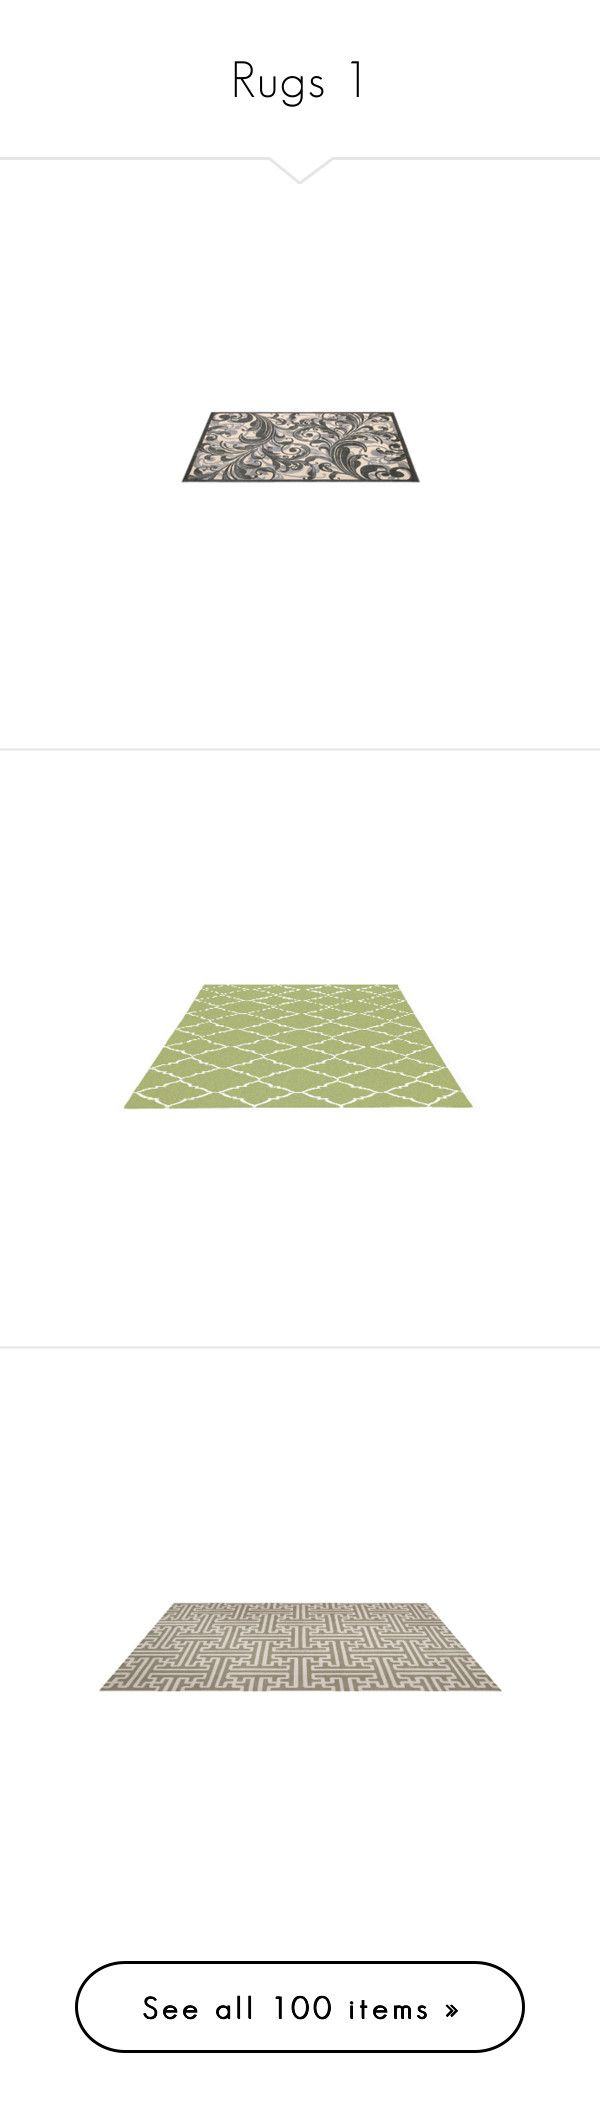 """""""Rugs 1"""" by thalassy ❤ liked on Polyvore featuring rugs, home, light green area rug, flat weave rug, flatweave wool rug, pattern rug, flat woven rugs, floors, tapetes and handwoven rug"""